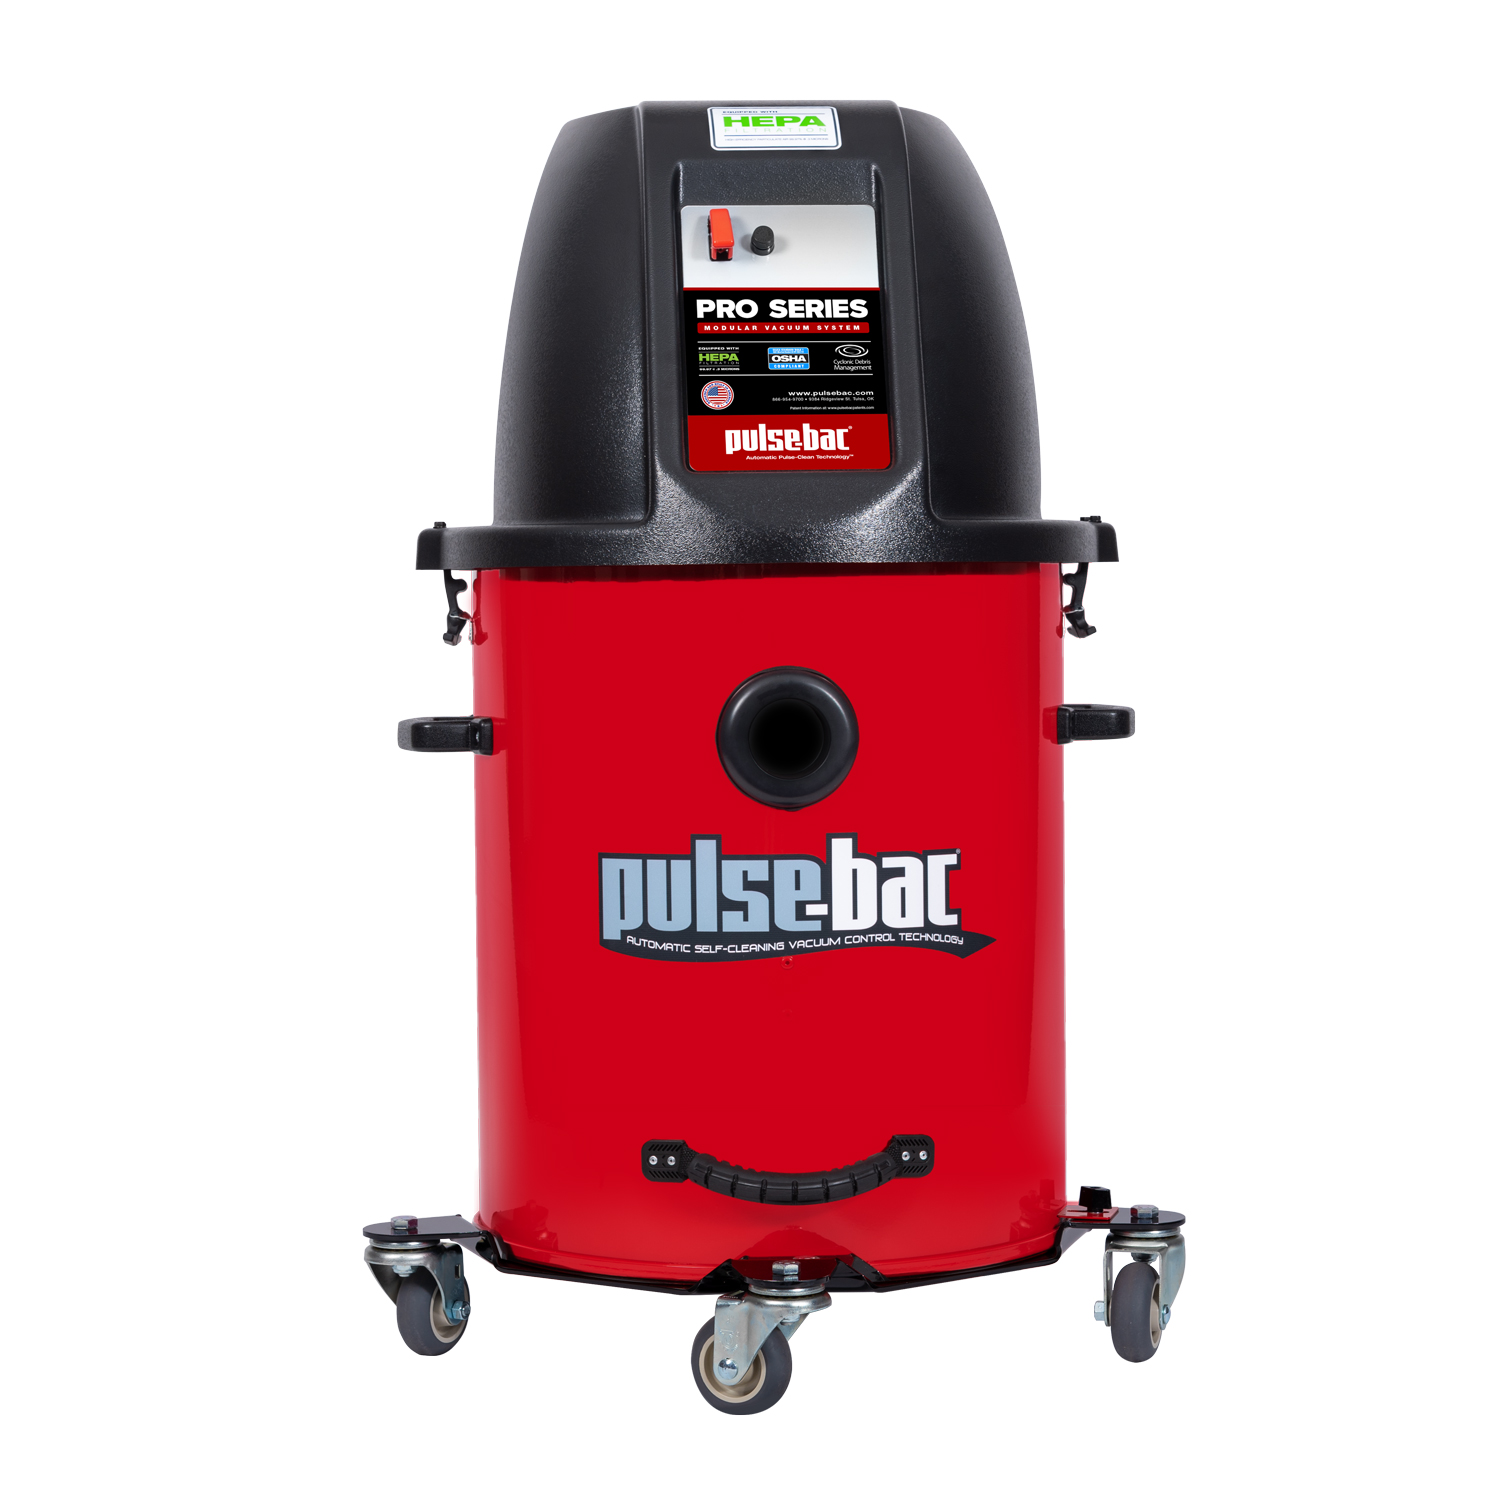 Dust Commander offers the Pulse-Bac Pro 311 Commercial Vacuum cleaner.